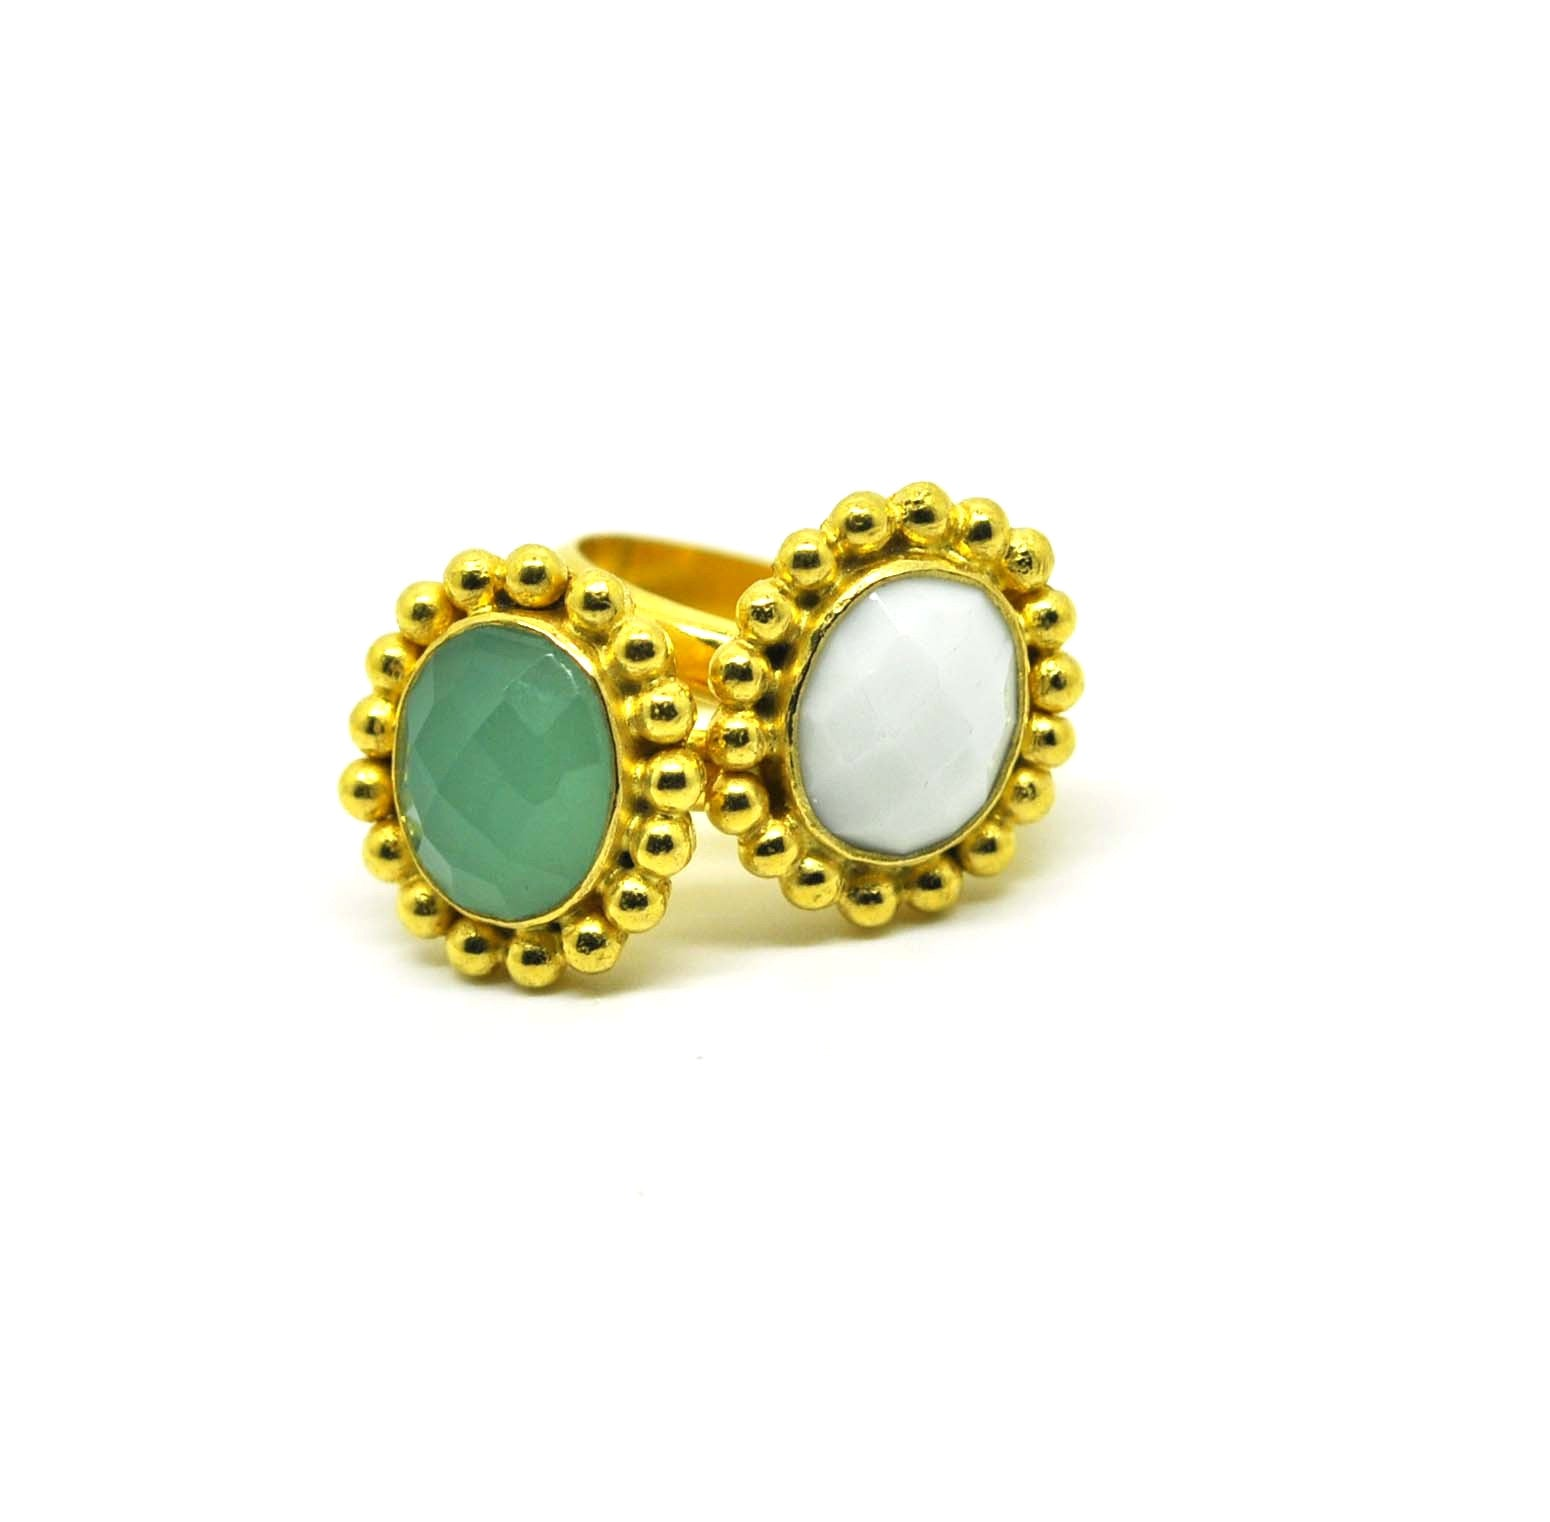 NEW Green chalcedony ring